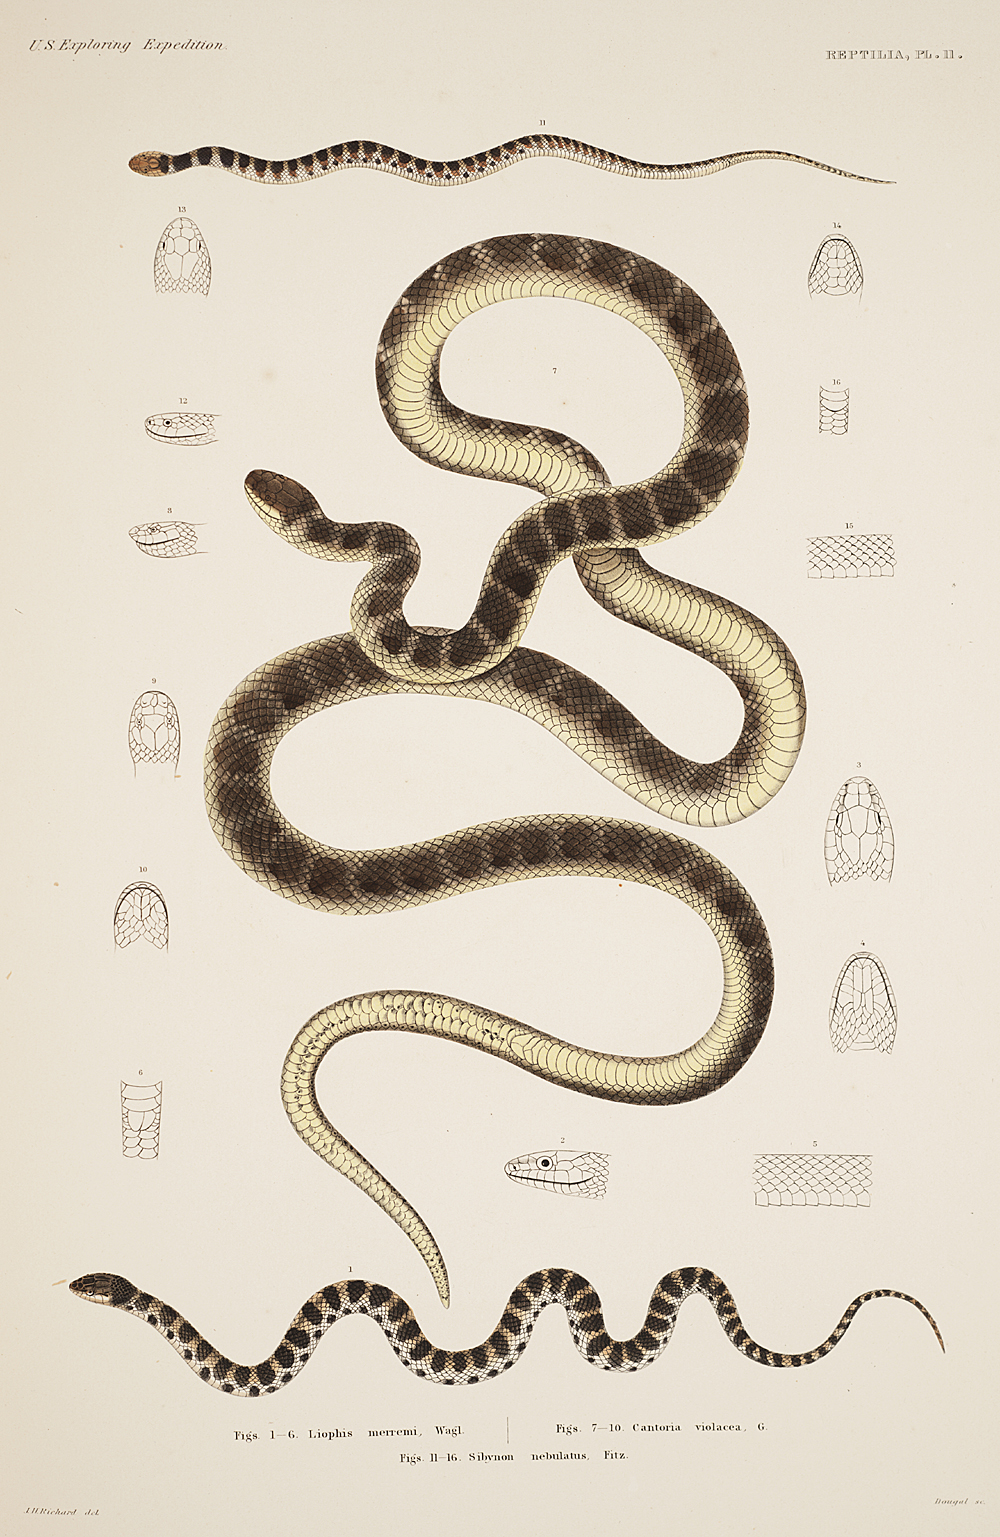 Reptilia, Plate 11,  Image number:sil19-31-041b